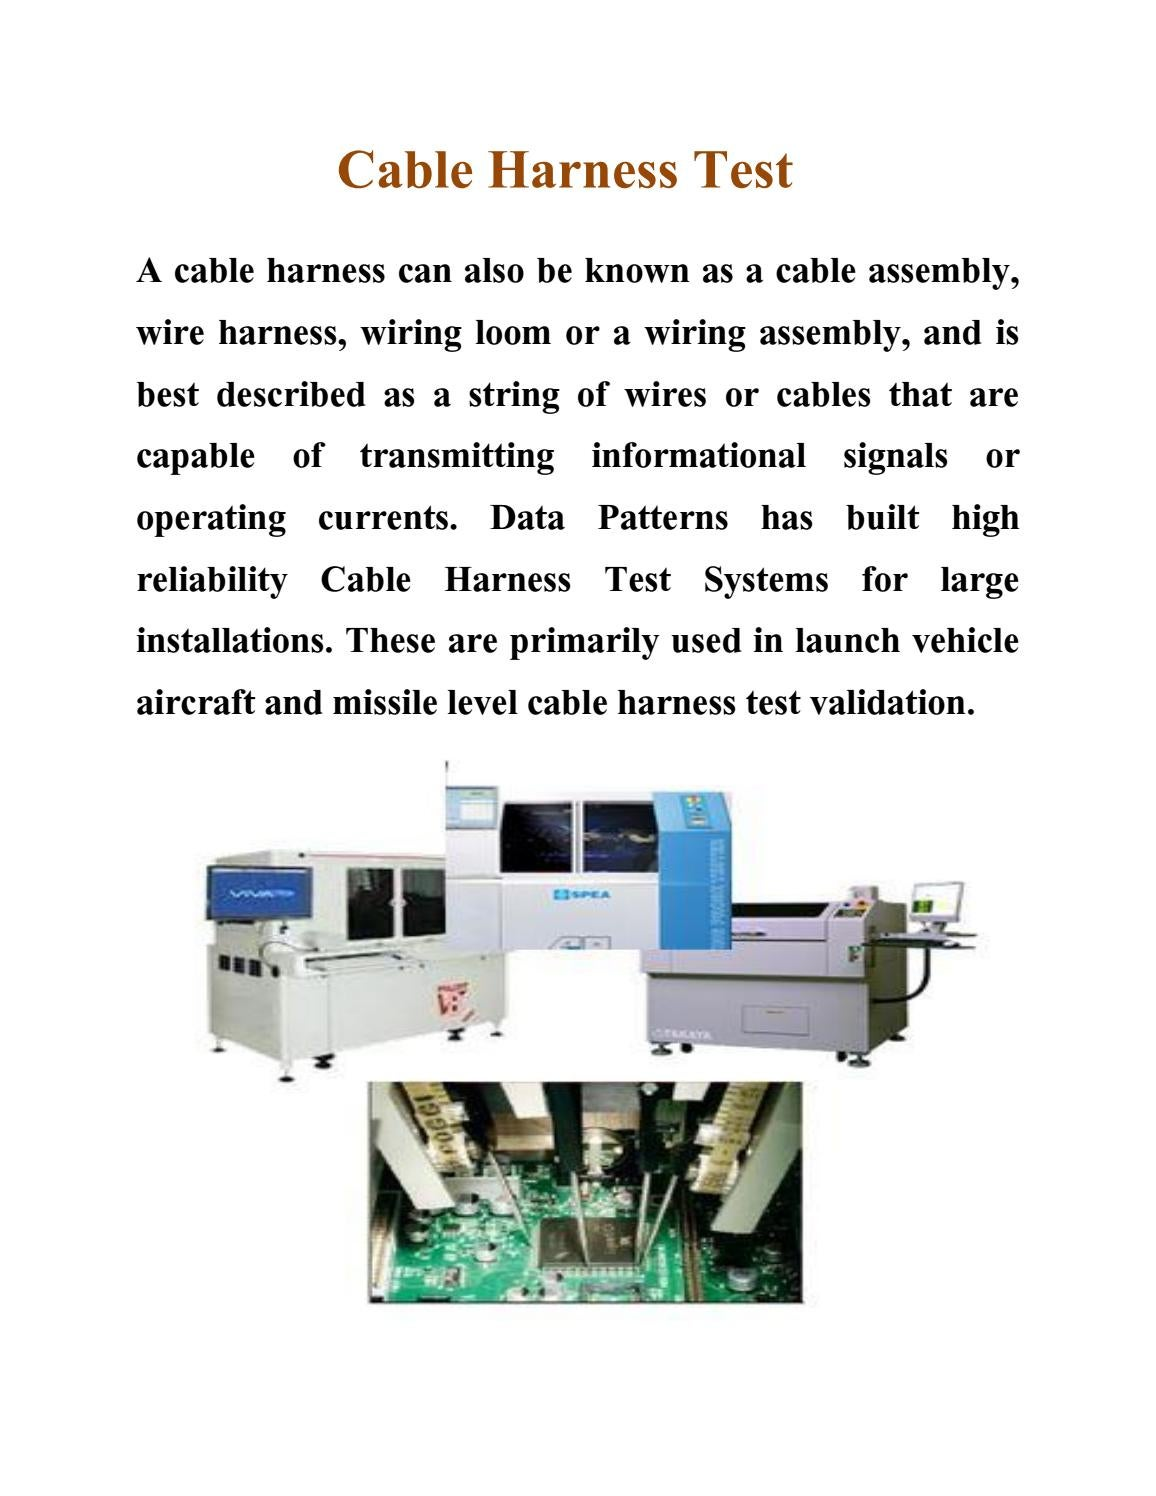 wiring harness used for printer cable harness test by equip test issuu  cable harness test by equip test issuu